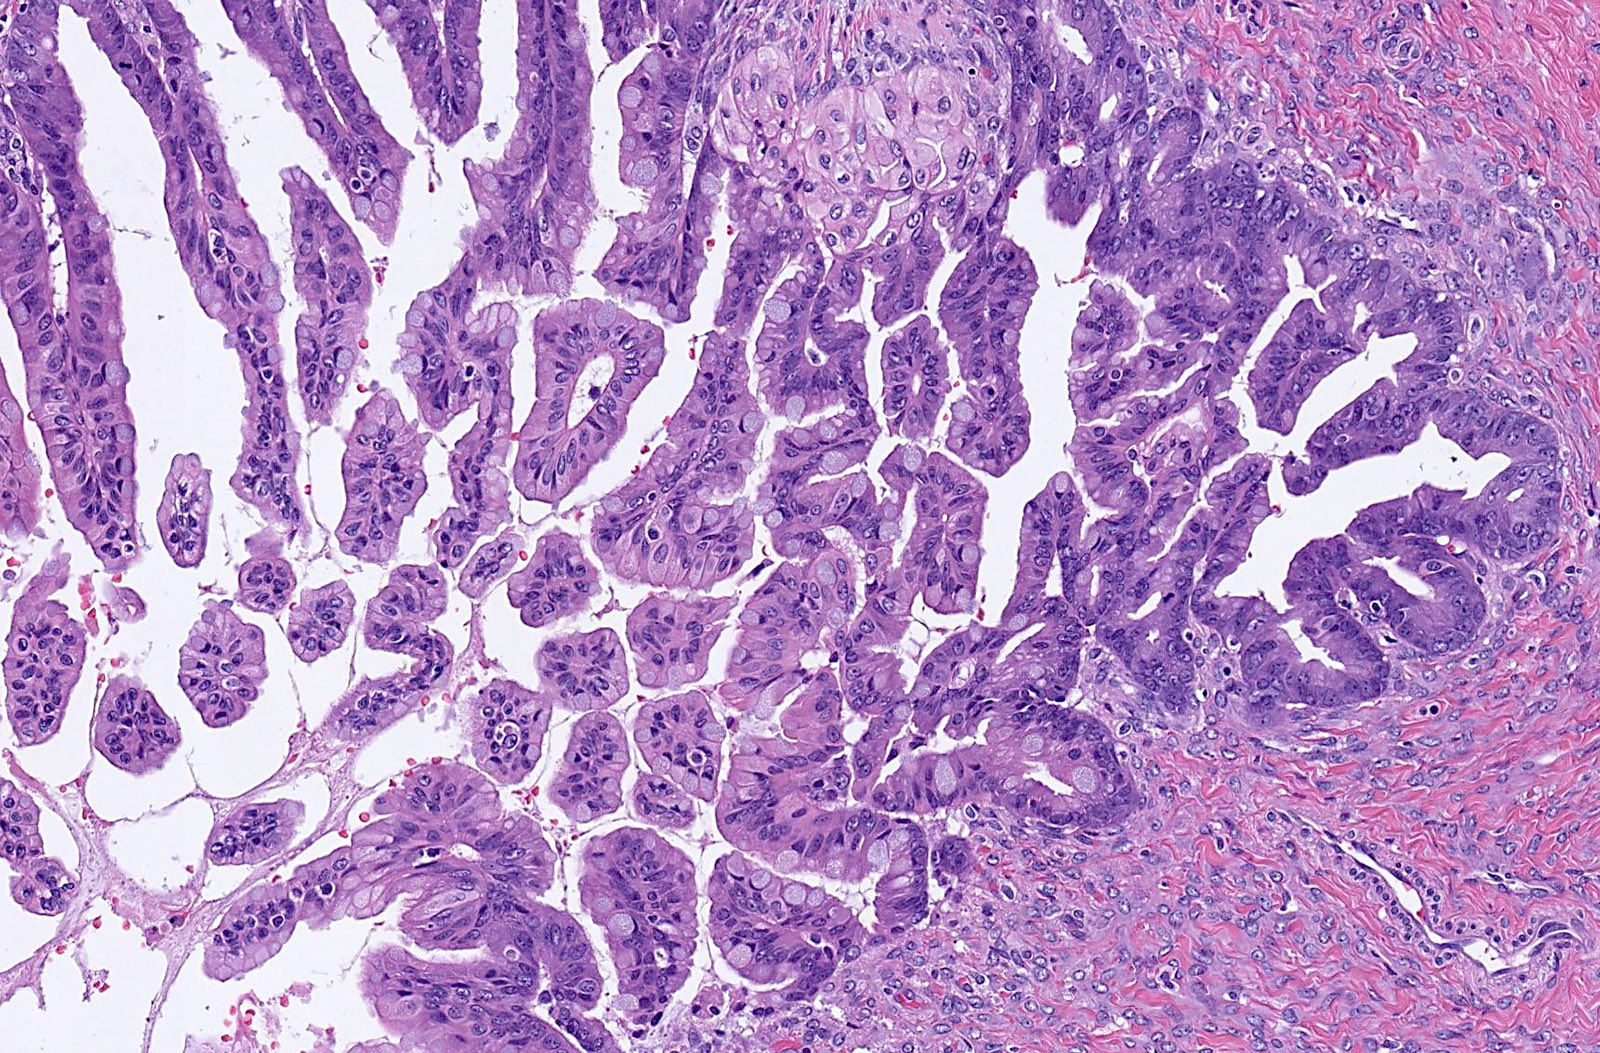 Mucinous intestinal type epithelium